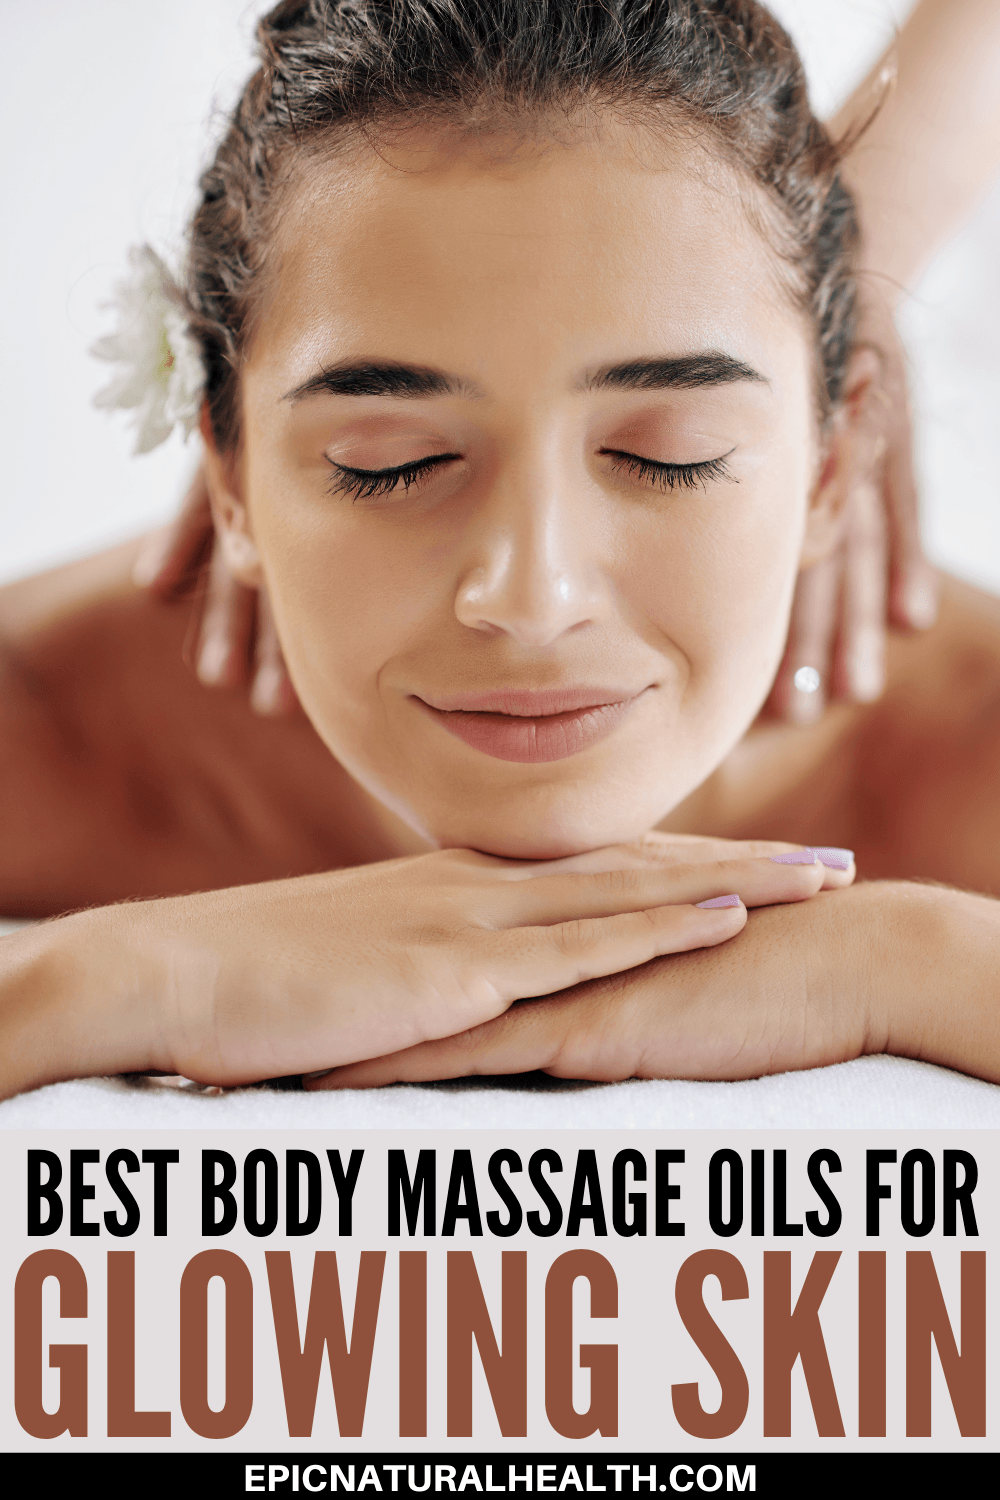 Best Body Massage Oils For Glowing Skin